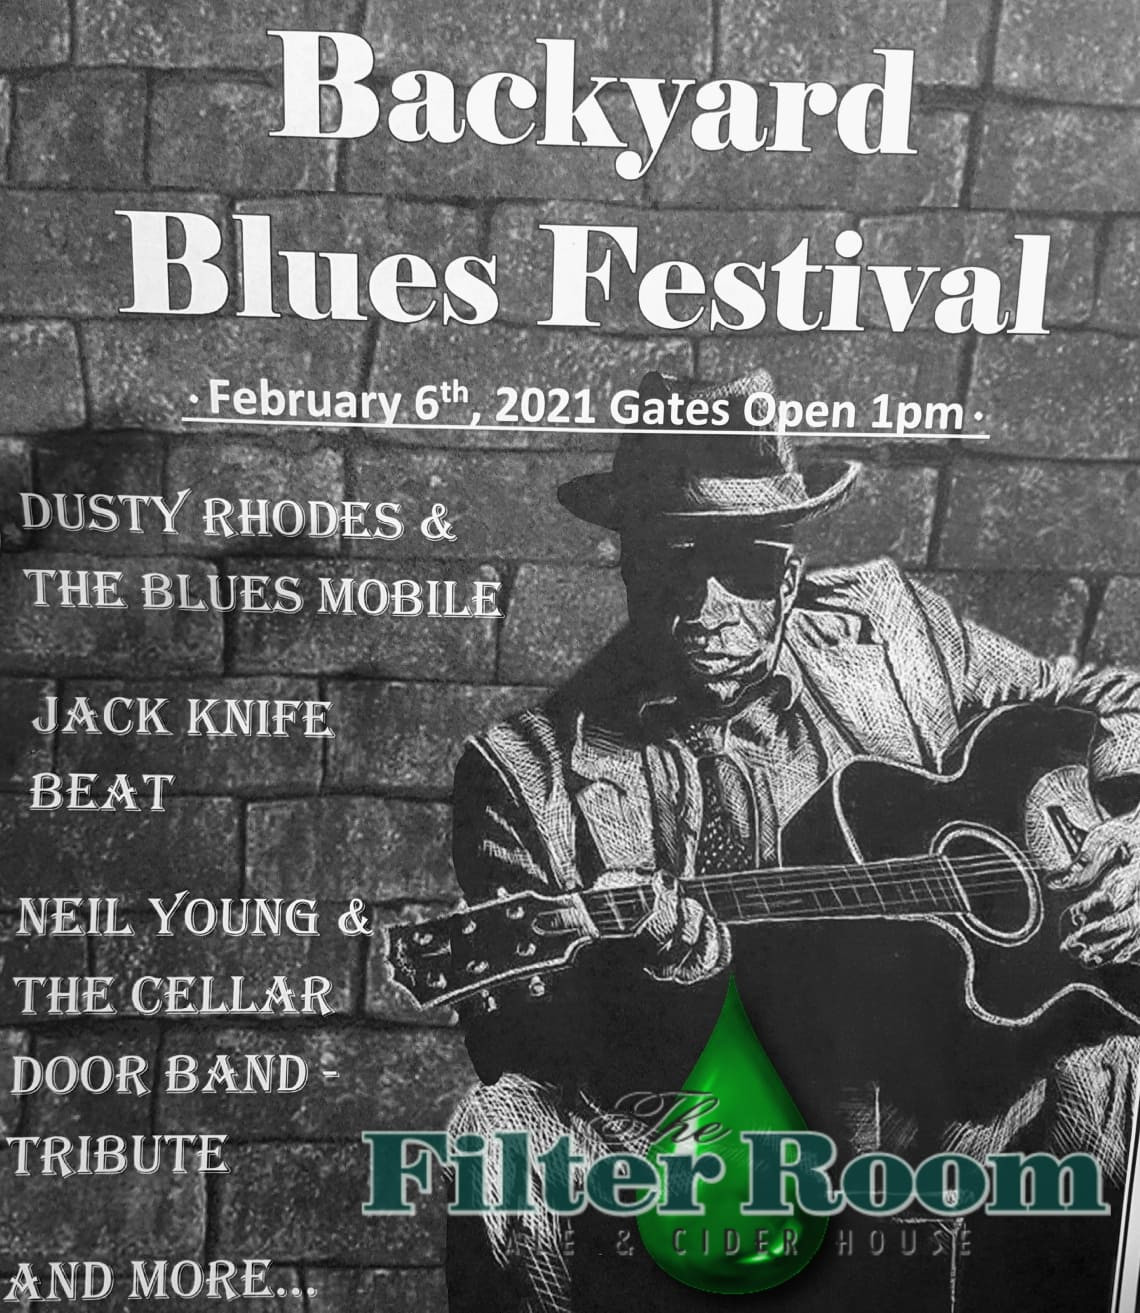 2021 Back Yard Blues Festival at The Filter Room